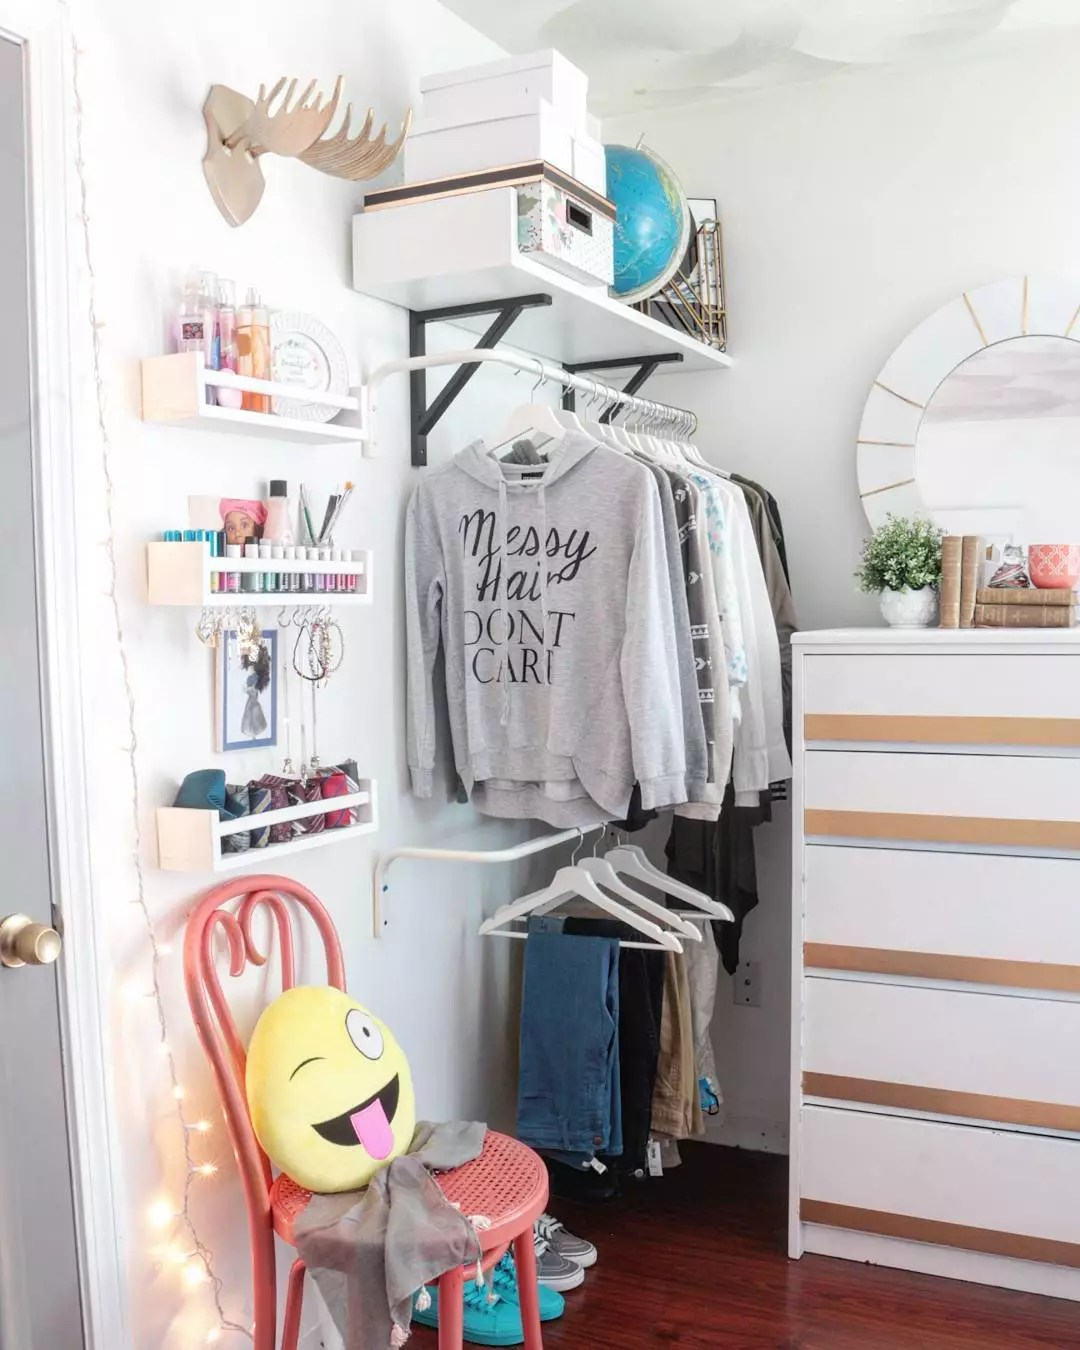 Bedroom with Vertical Storage, Including Hanging Shelves. Photo by Instagram user @madebycarli